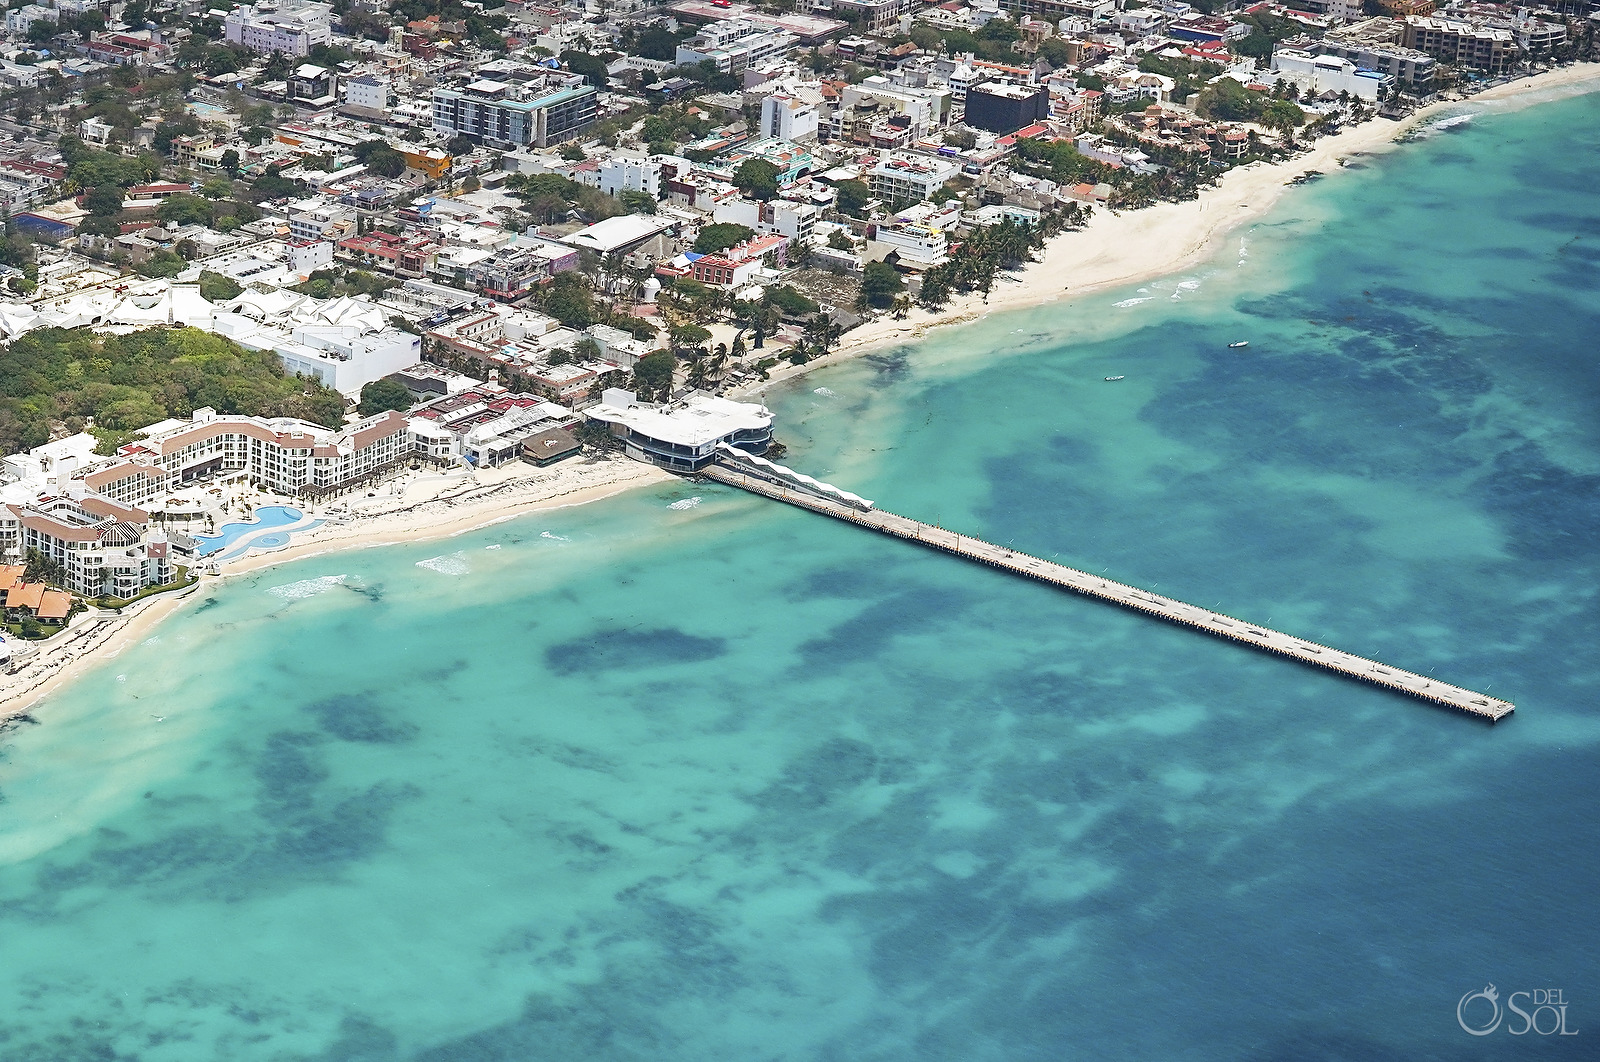 Playa del Carmen Aerial Photography without tourists